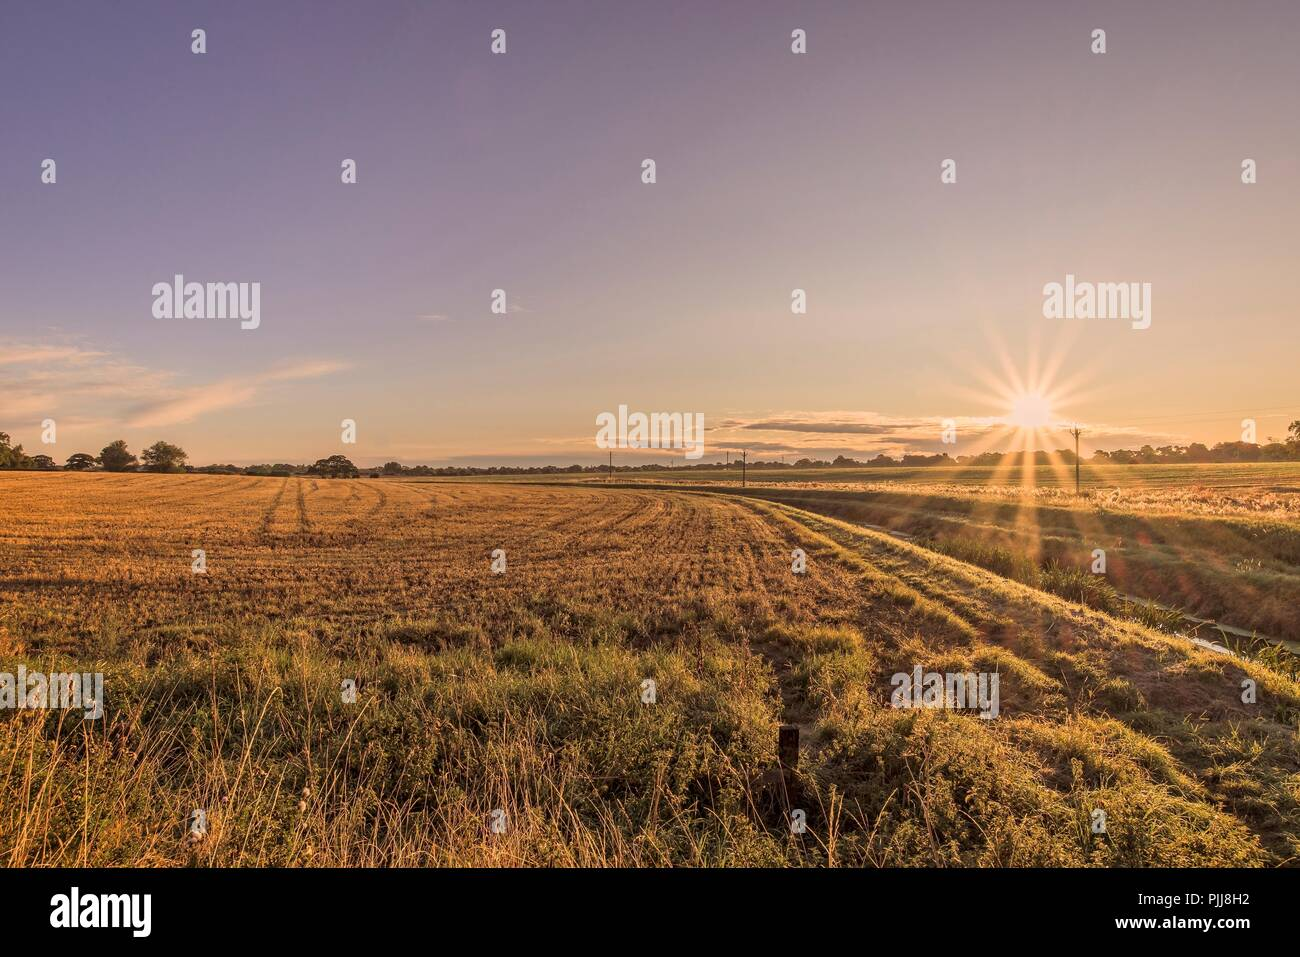 The dawn light falls on a field that has recently been harvested.  The stubble has a golden glow and there are furrows running through it. A small str - Stock Image